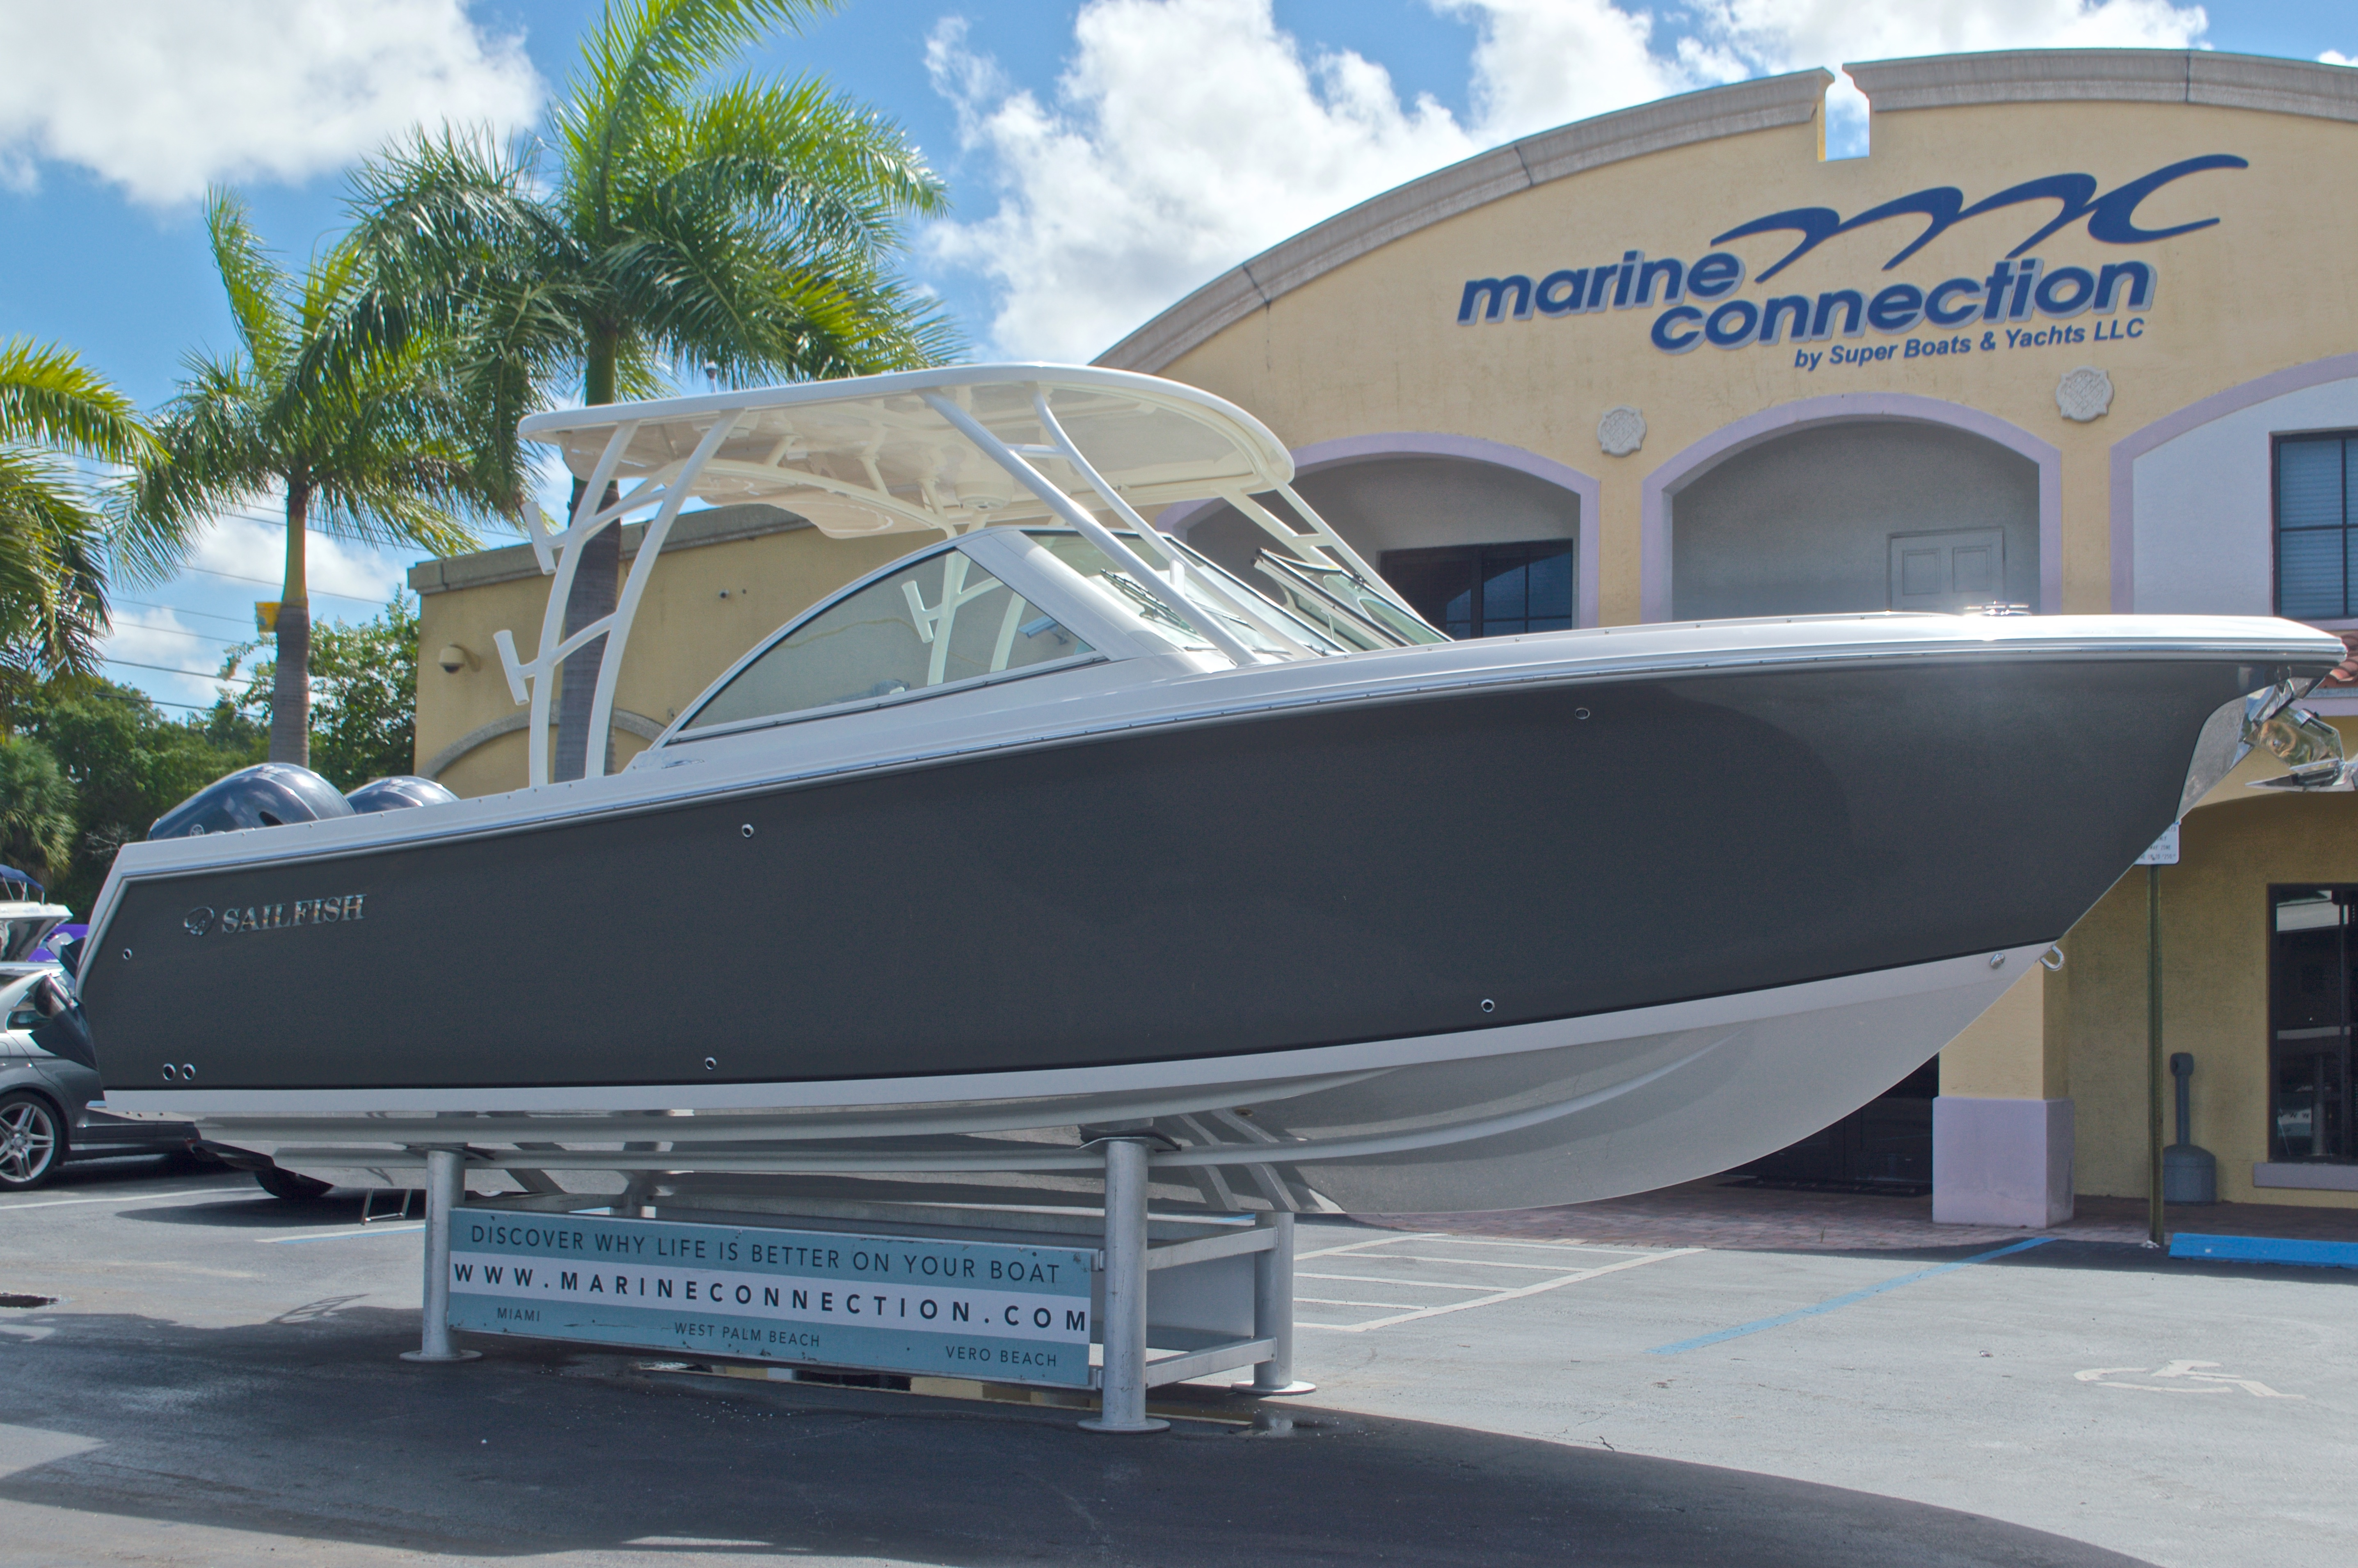 Thumbnail 1 for New 2017 Sailfish 275 Dual Console boat for sale in West Palm Beach, FL